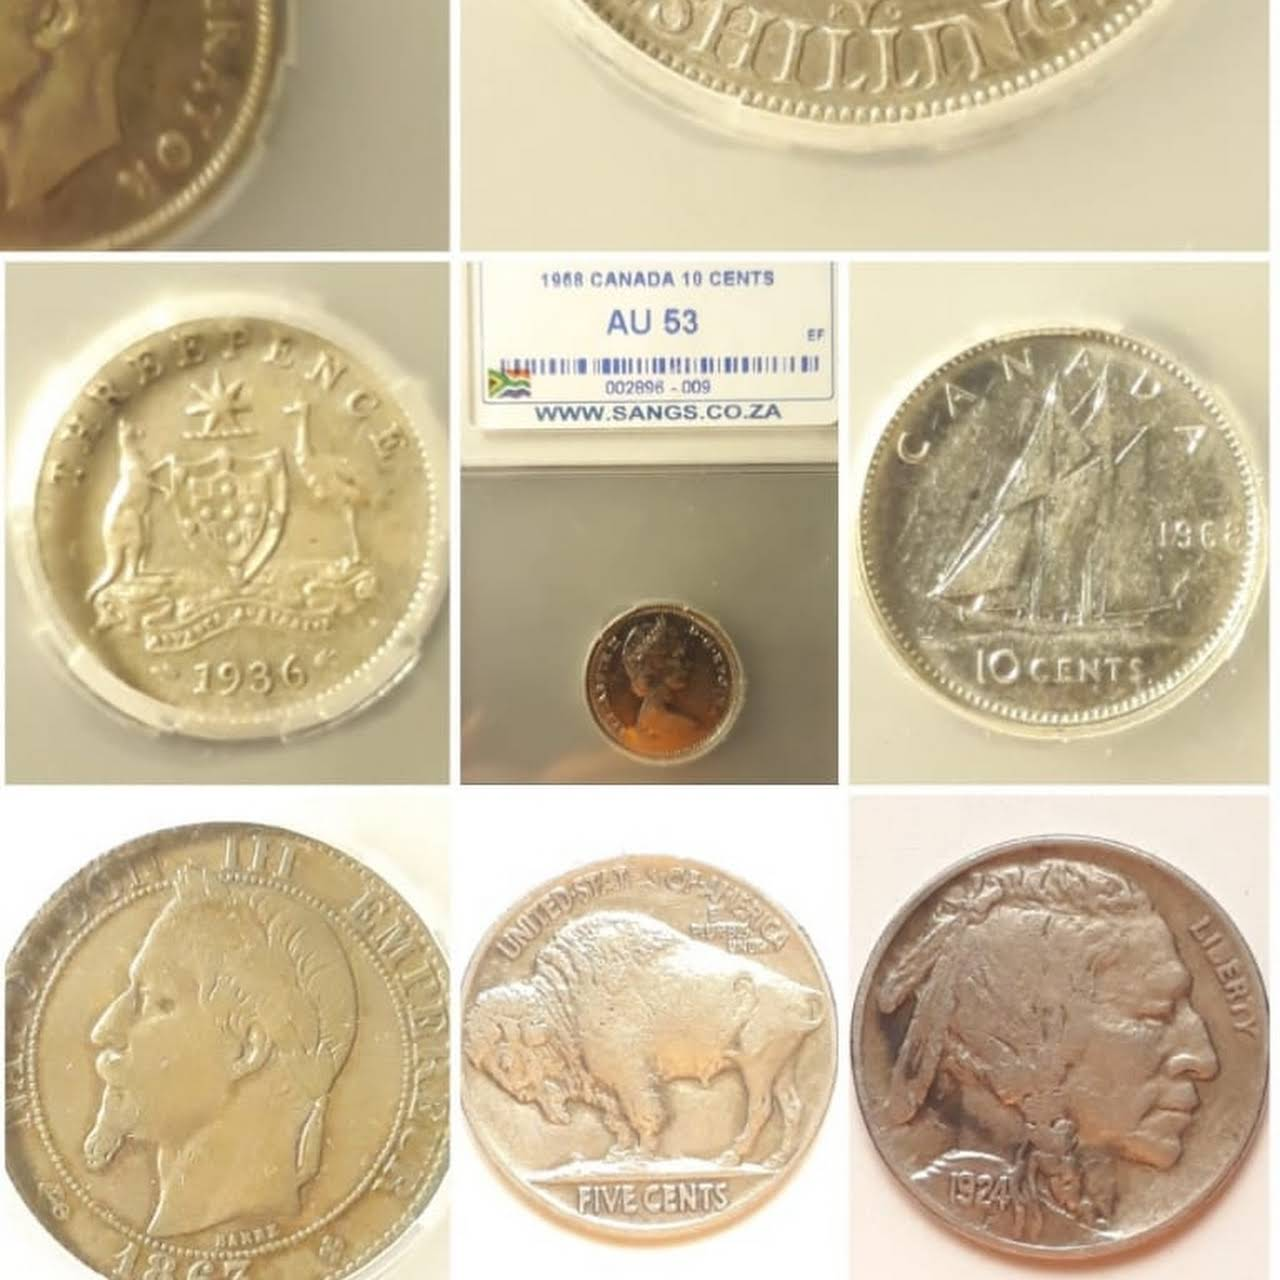 Mperor's Coins - We Buy and sell coins and notes in Benoni